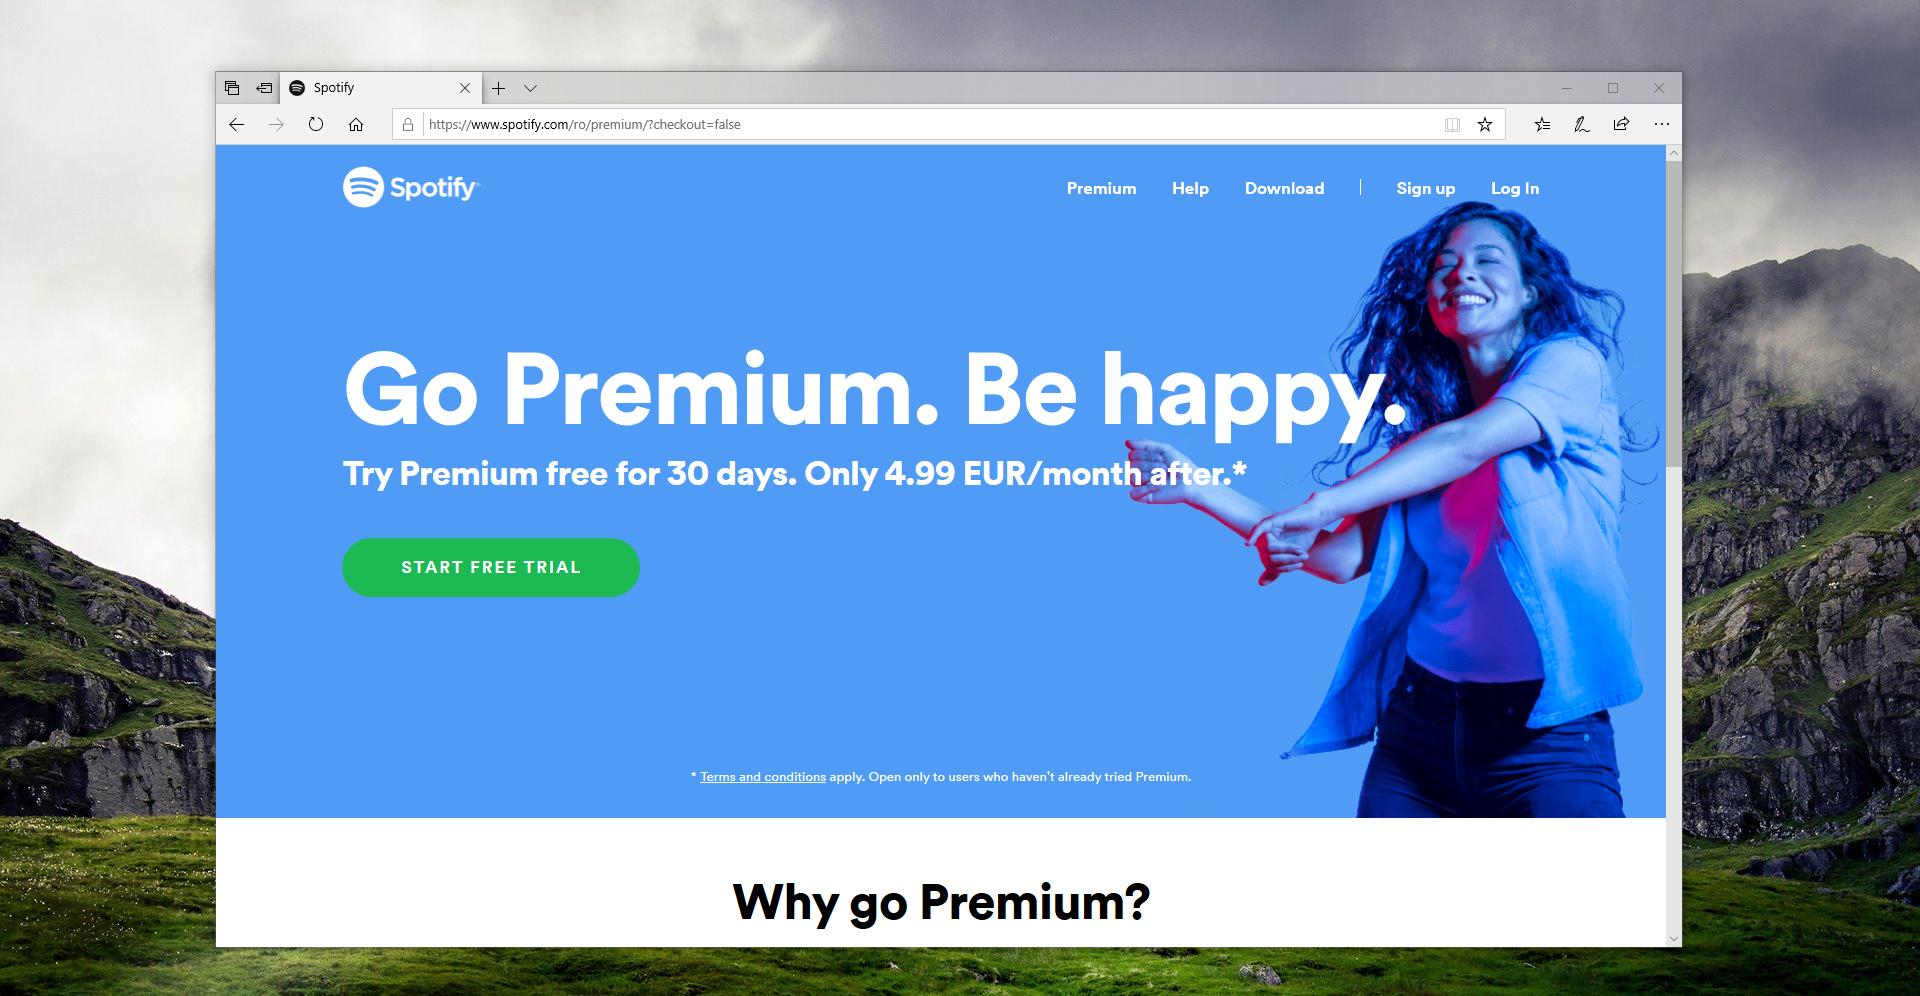 Spotify premium is available with a $9.99 per month fee